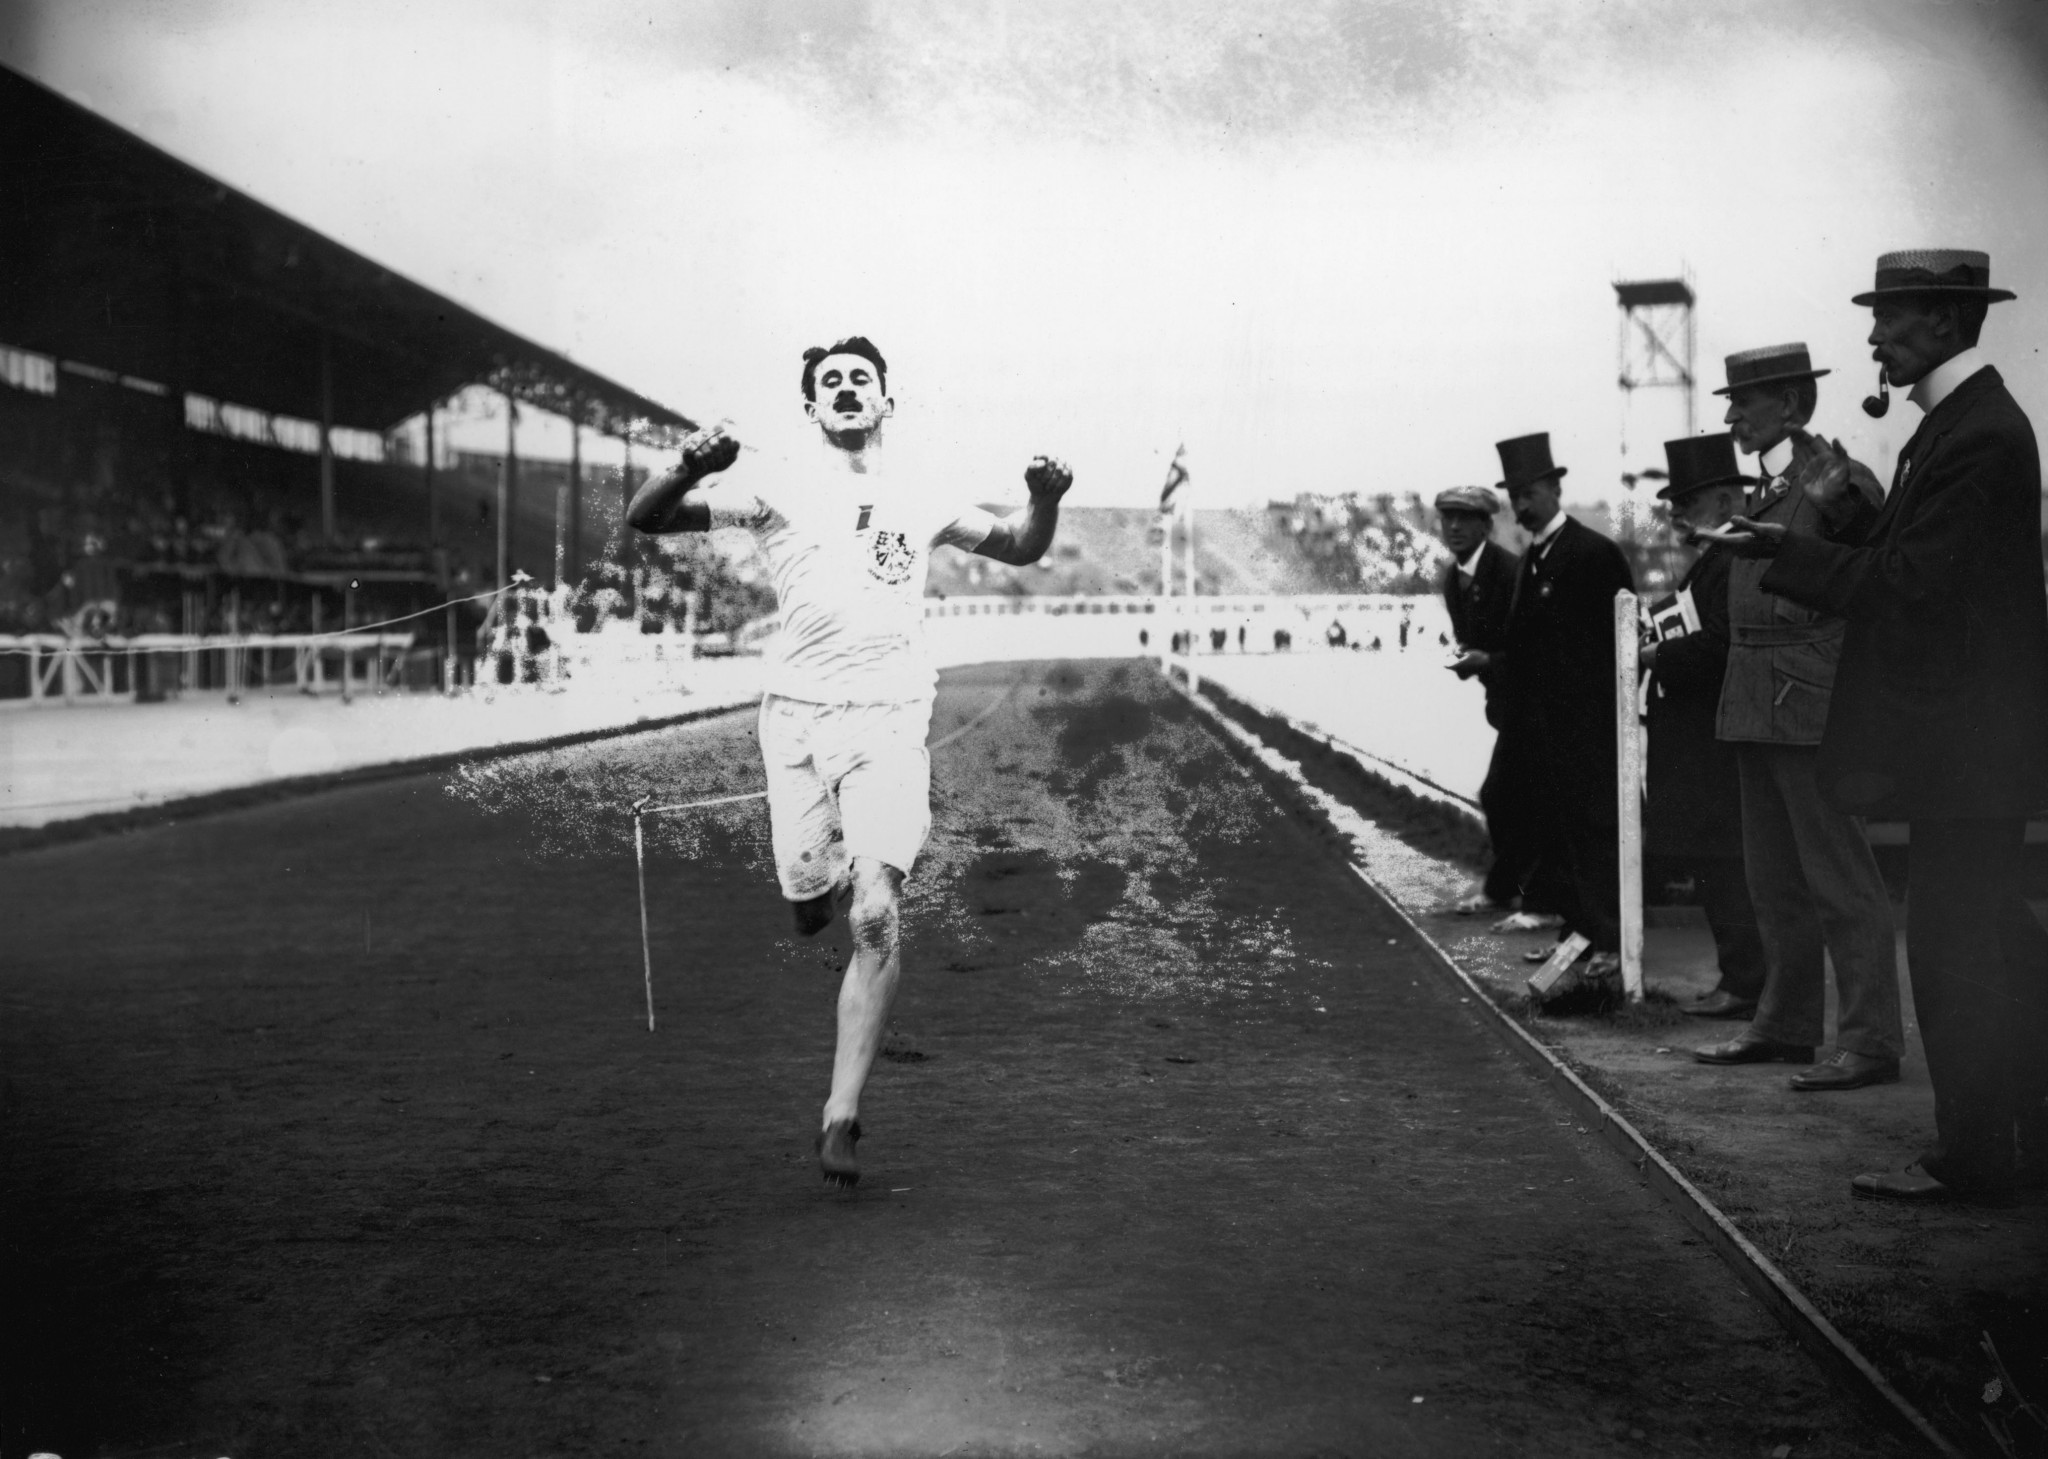 Lieutenant Wyndham Halswelle crosses the line in the re-run of the Olympic men's 400m final at London 1908 ©Getty Images